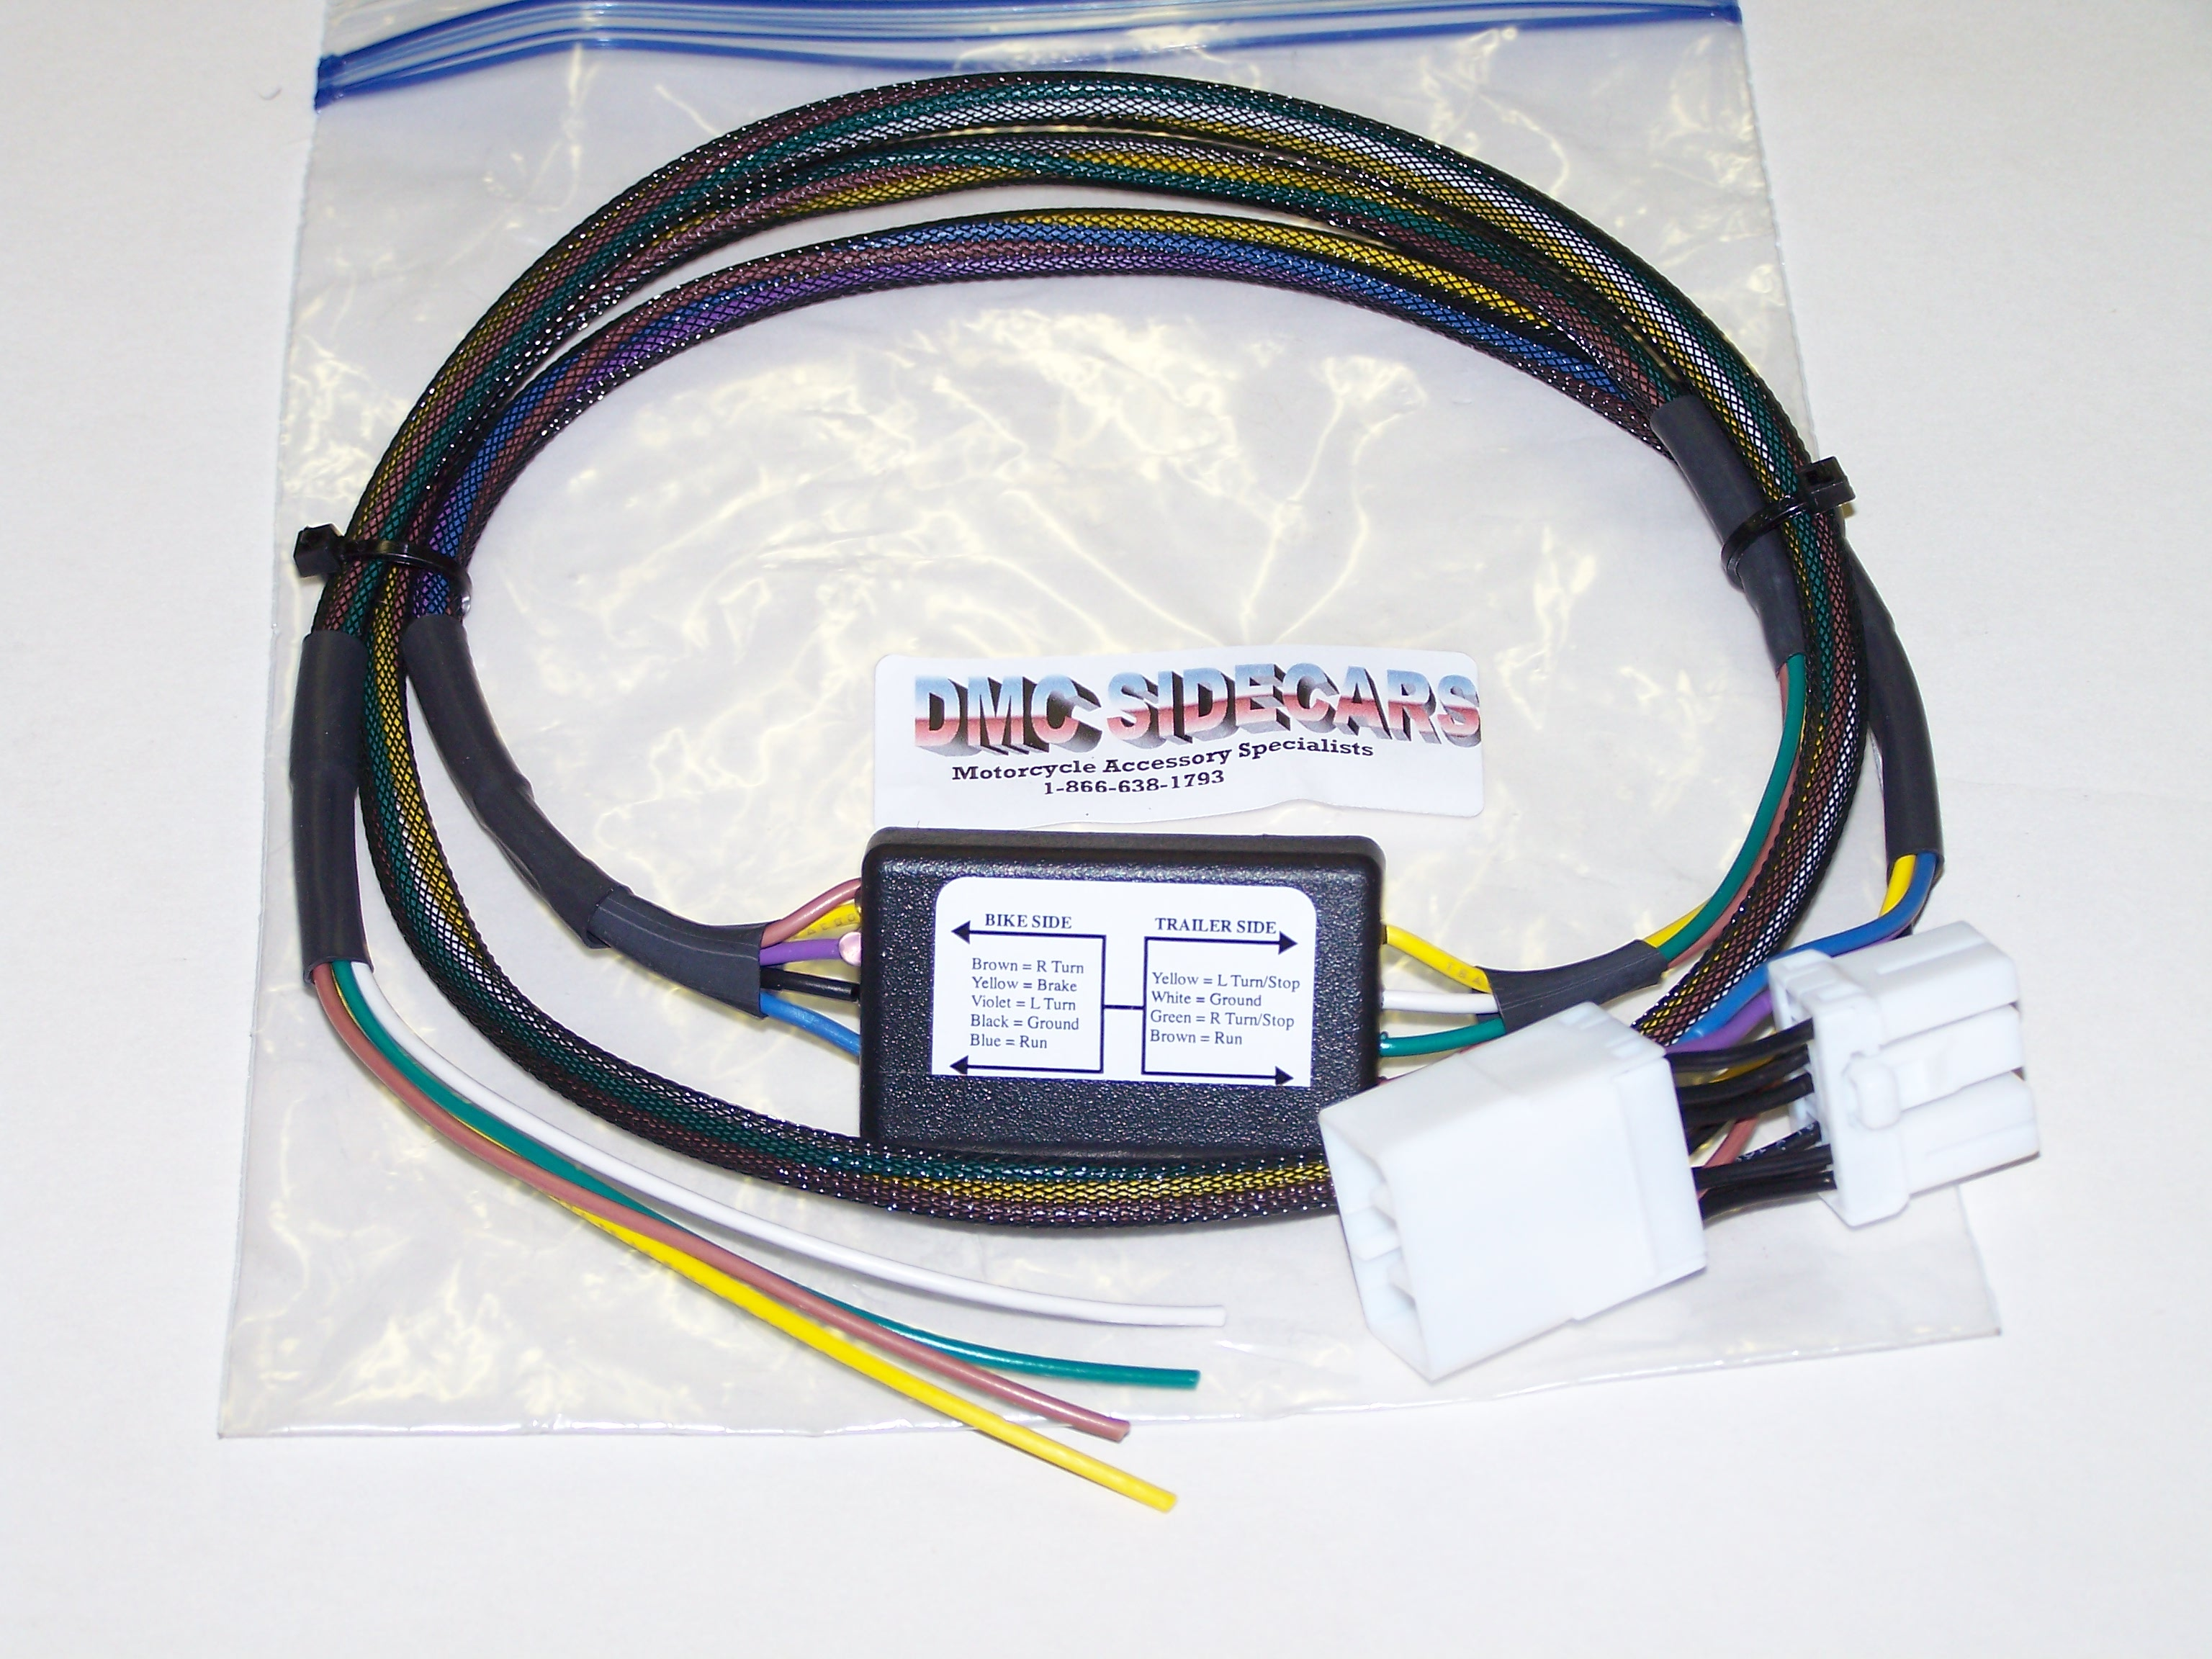 Harley-Davidson Trike 5 to 4 Wire Convertor This basic wiring harness  automatically converts from a 5 wire system to a 4 wire system, saving the  headaches ...